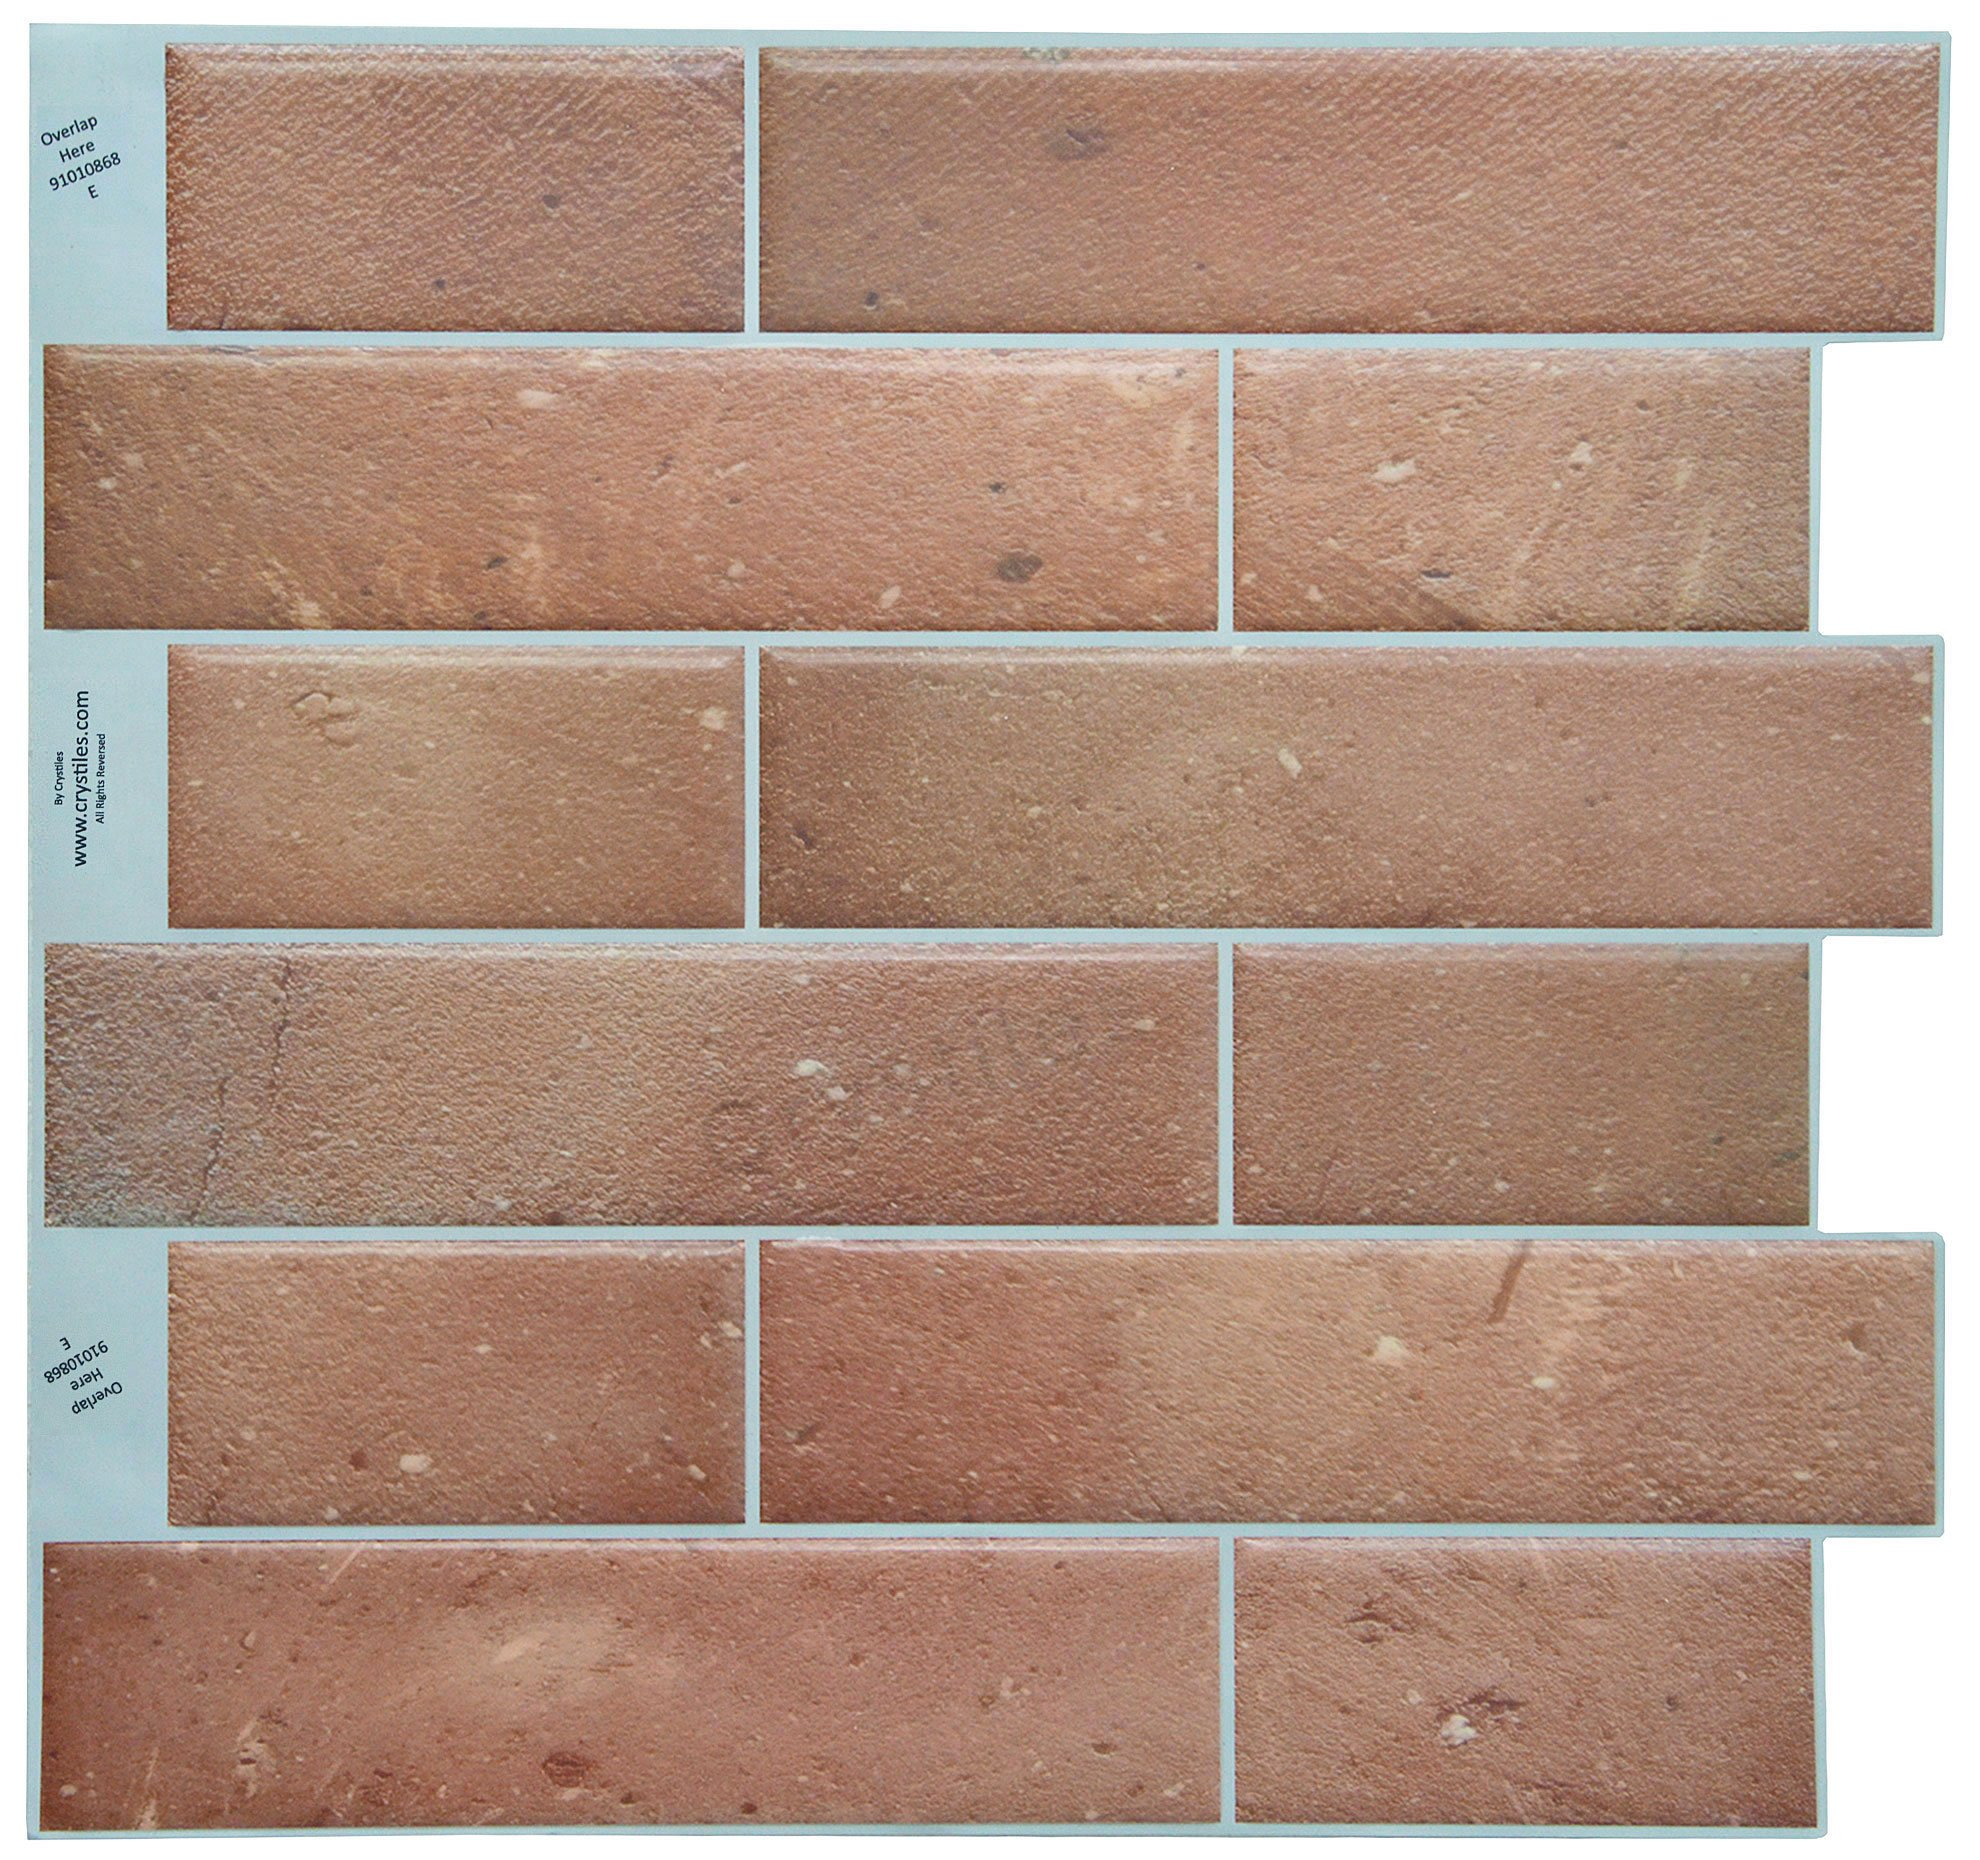 Crystiles Peel and Stick Adhesive DIY Backsplash Tile Stick-on Vinyl Wall Tile, Red Brick, Matt Finish, Item #91010868, 10'' X 10'' Each, 6 Sheets Pack